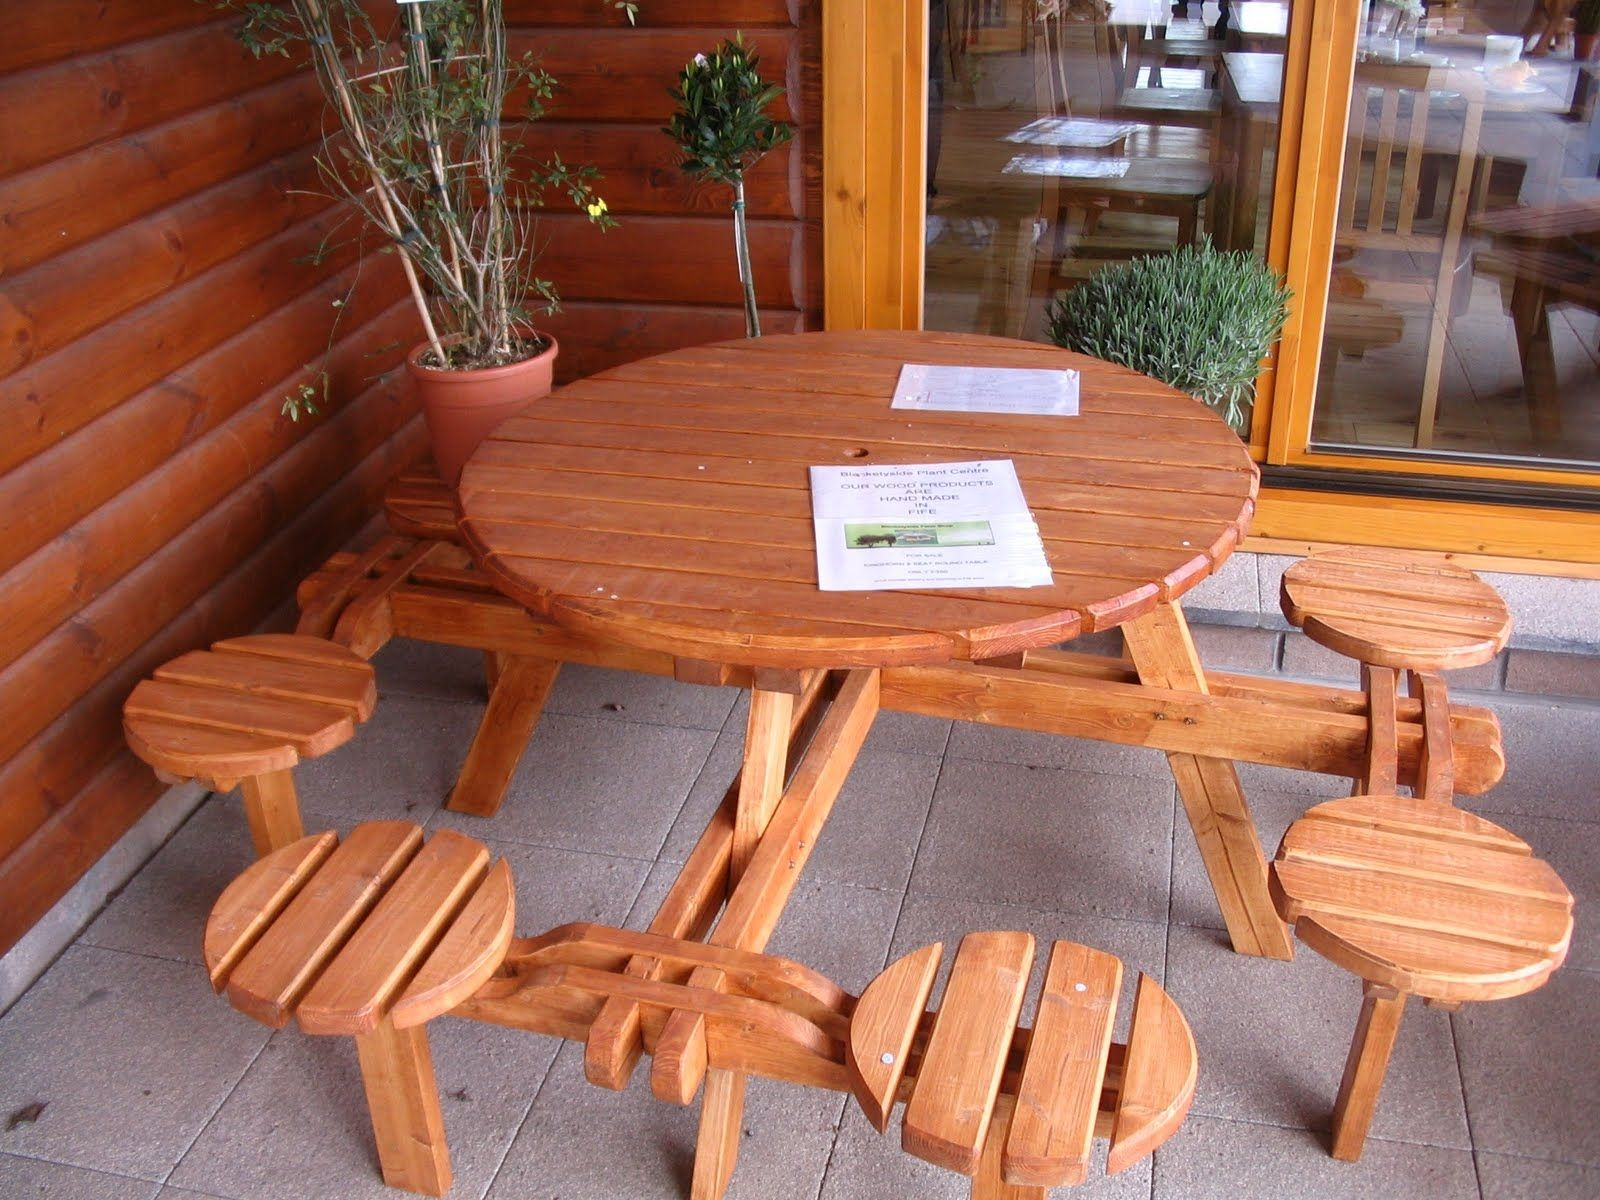 Seater Round Picnic Table Plans Httparghartscom Pinterest - 8 seater round picnic table